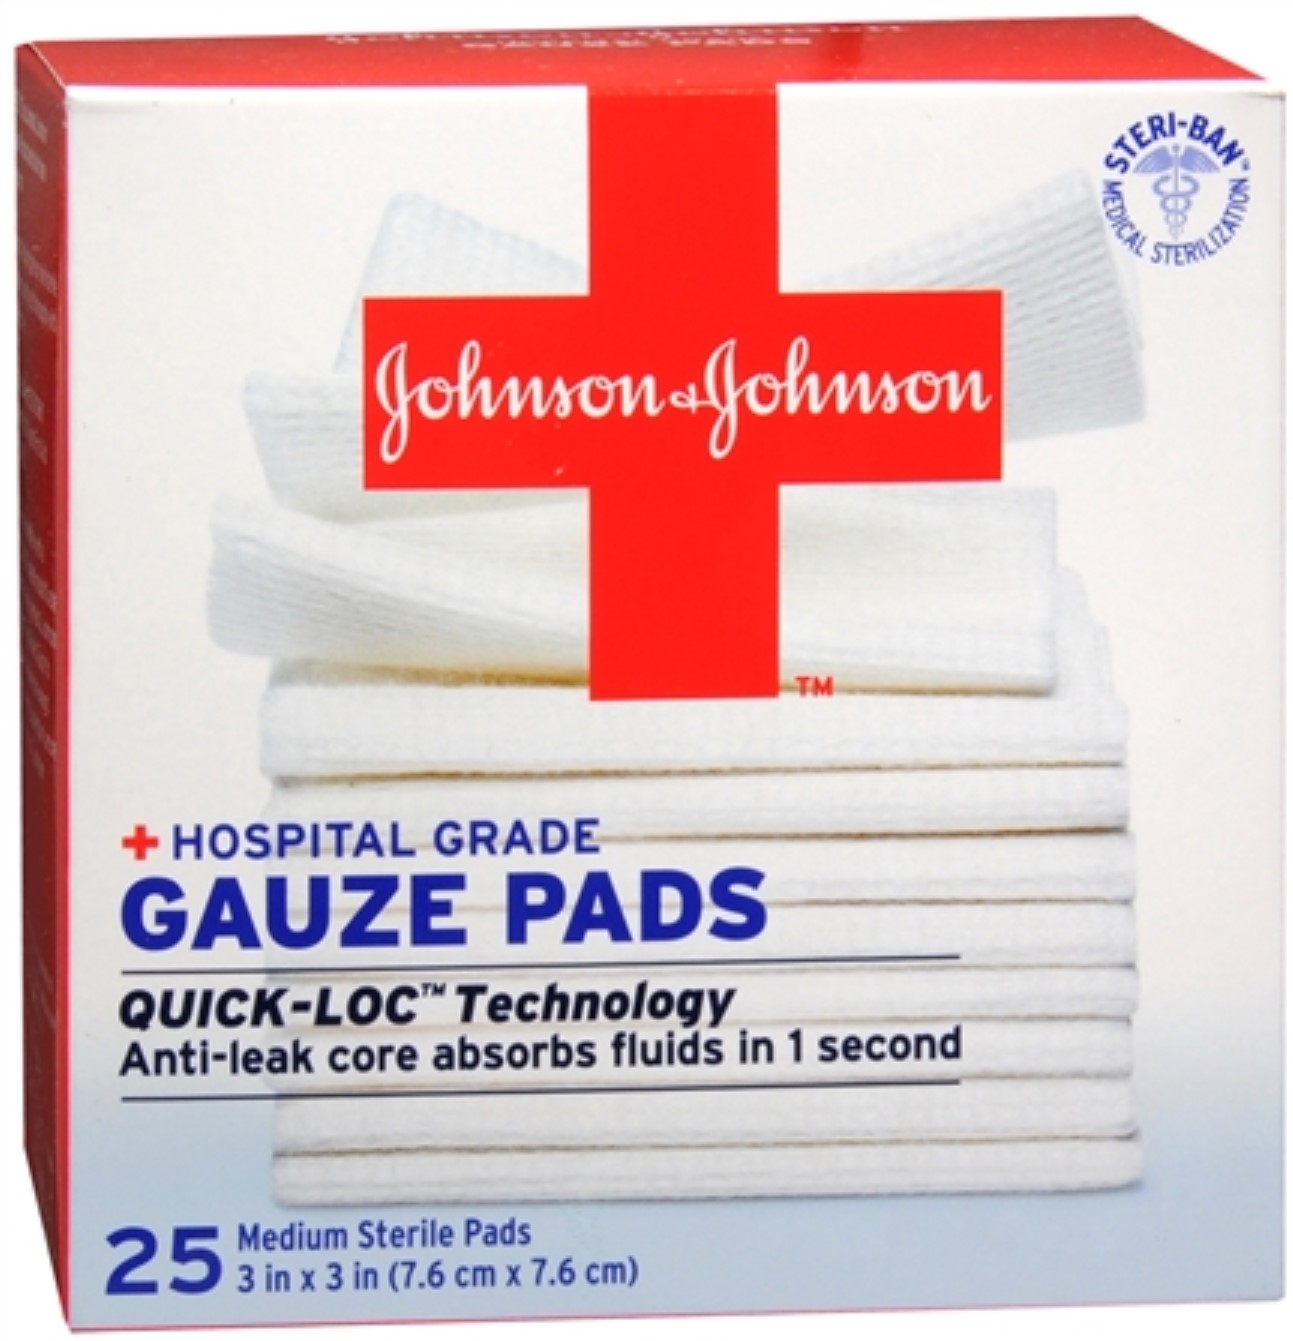 JOHNSON & JOHNSON Red Cross First Aid Gauze Pads 3 Inches X 3 Inches 25 Each (Pack of 4)